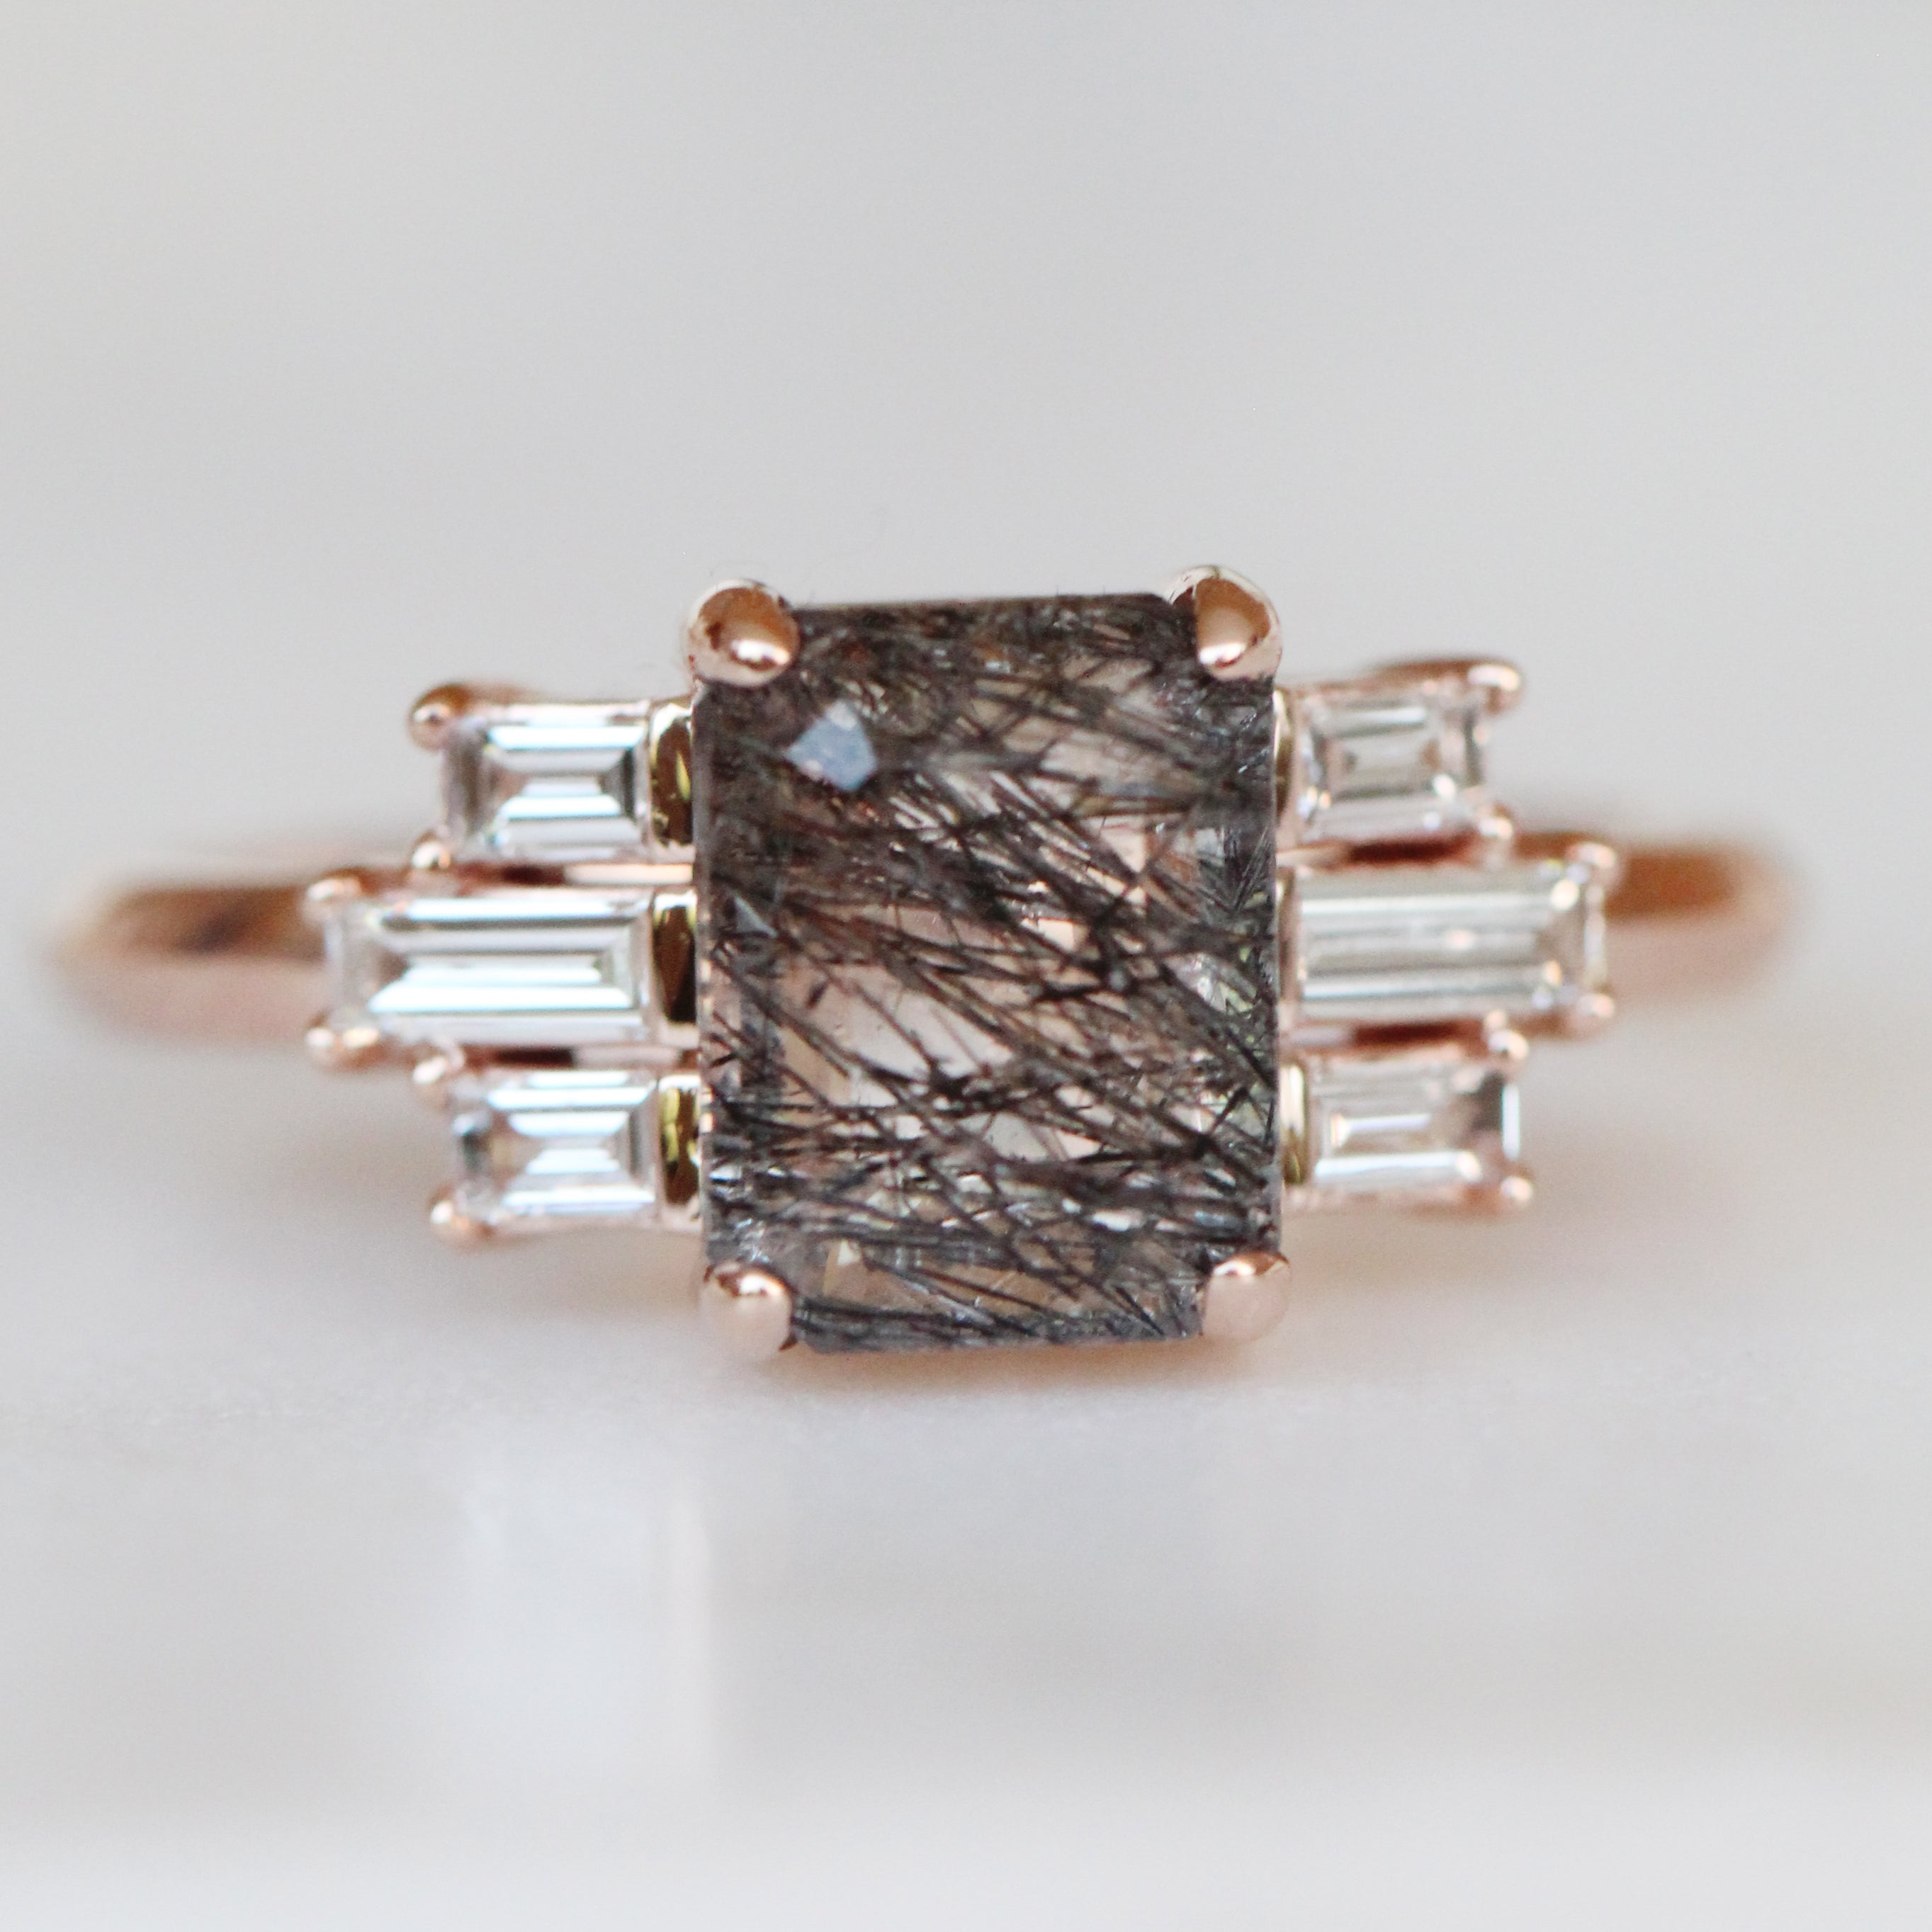 Apollo - Tourmalinated Emerald Cut Quartz and diamond baguette ring in rose gold - ready to size and ship - Salt & Pepper Celestial Diamond Engagement Rings and Wedding Bands  by Midwinter Co.